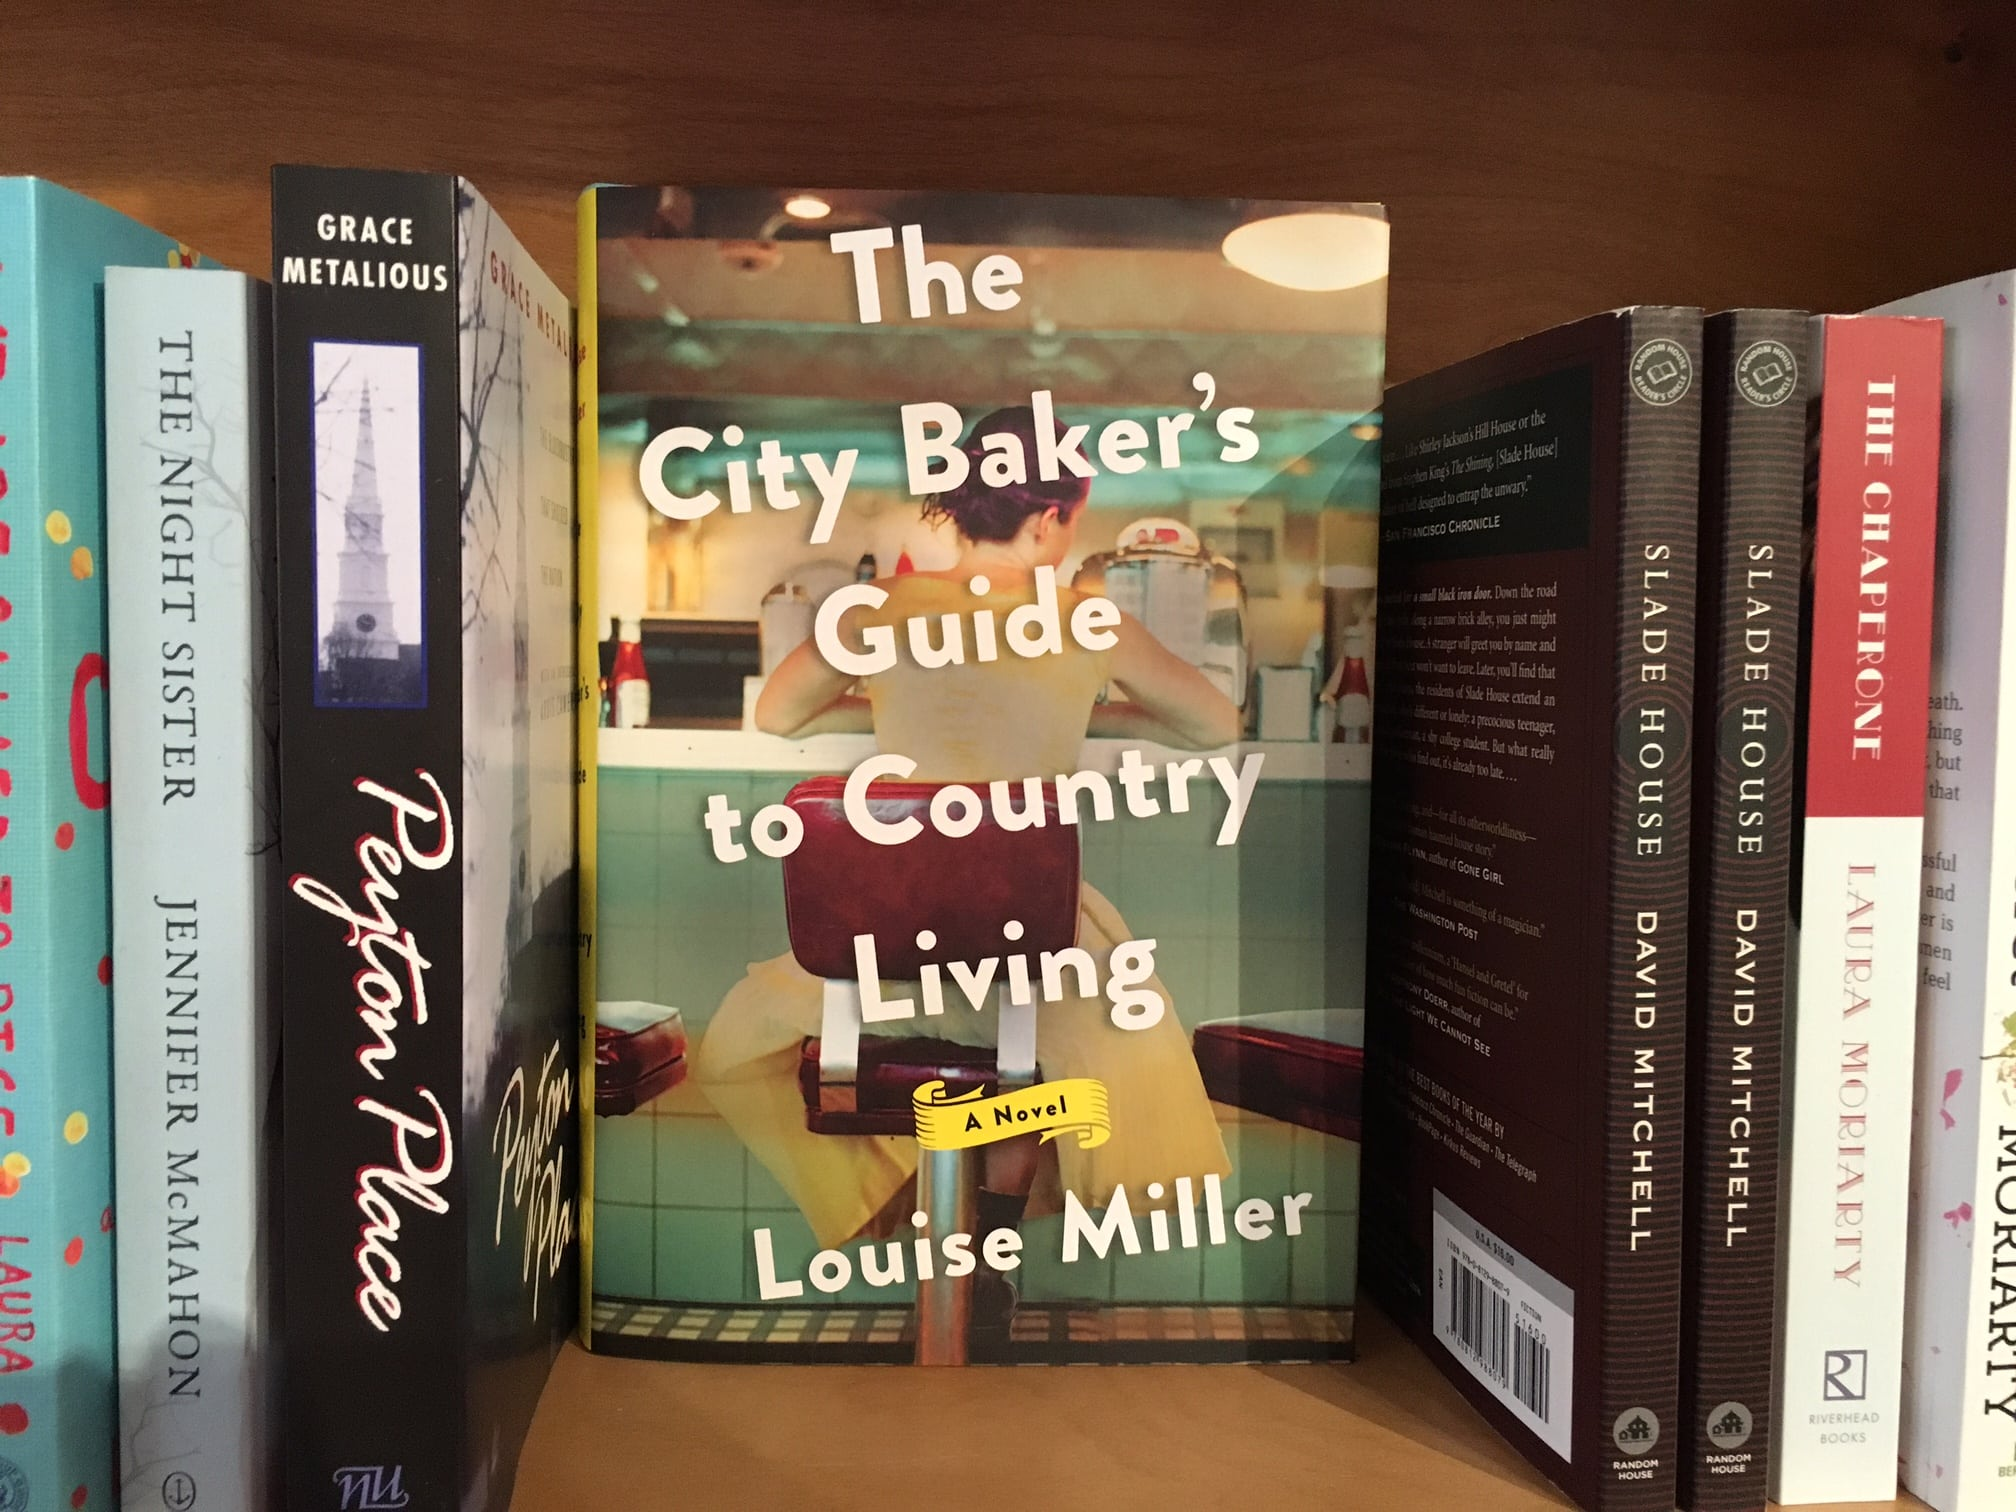 The City Baker's Guide to Country Living, Louise Miller